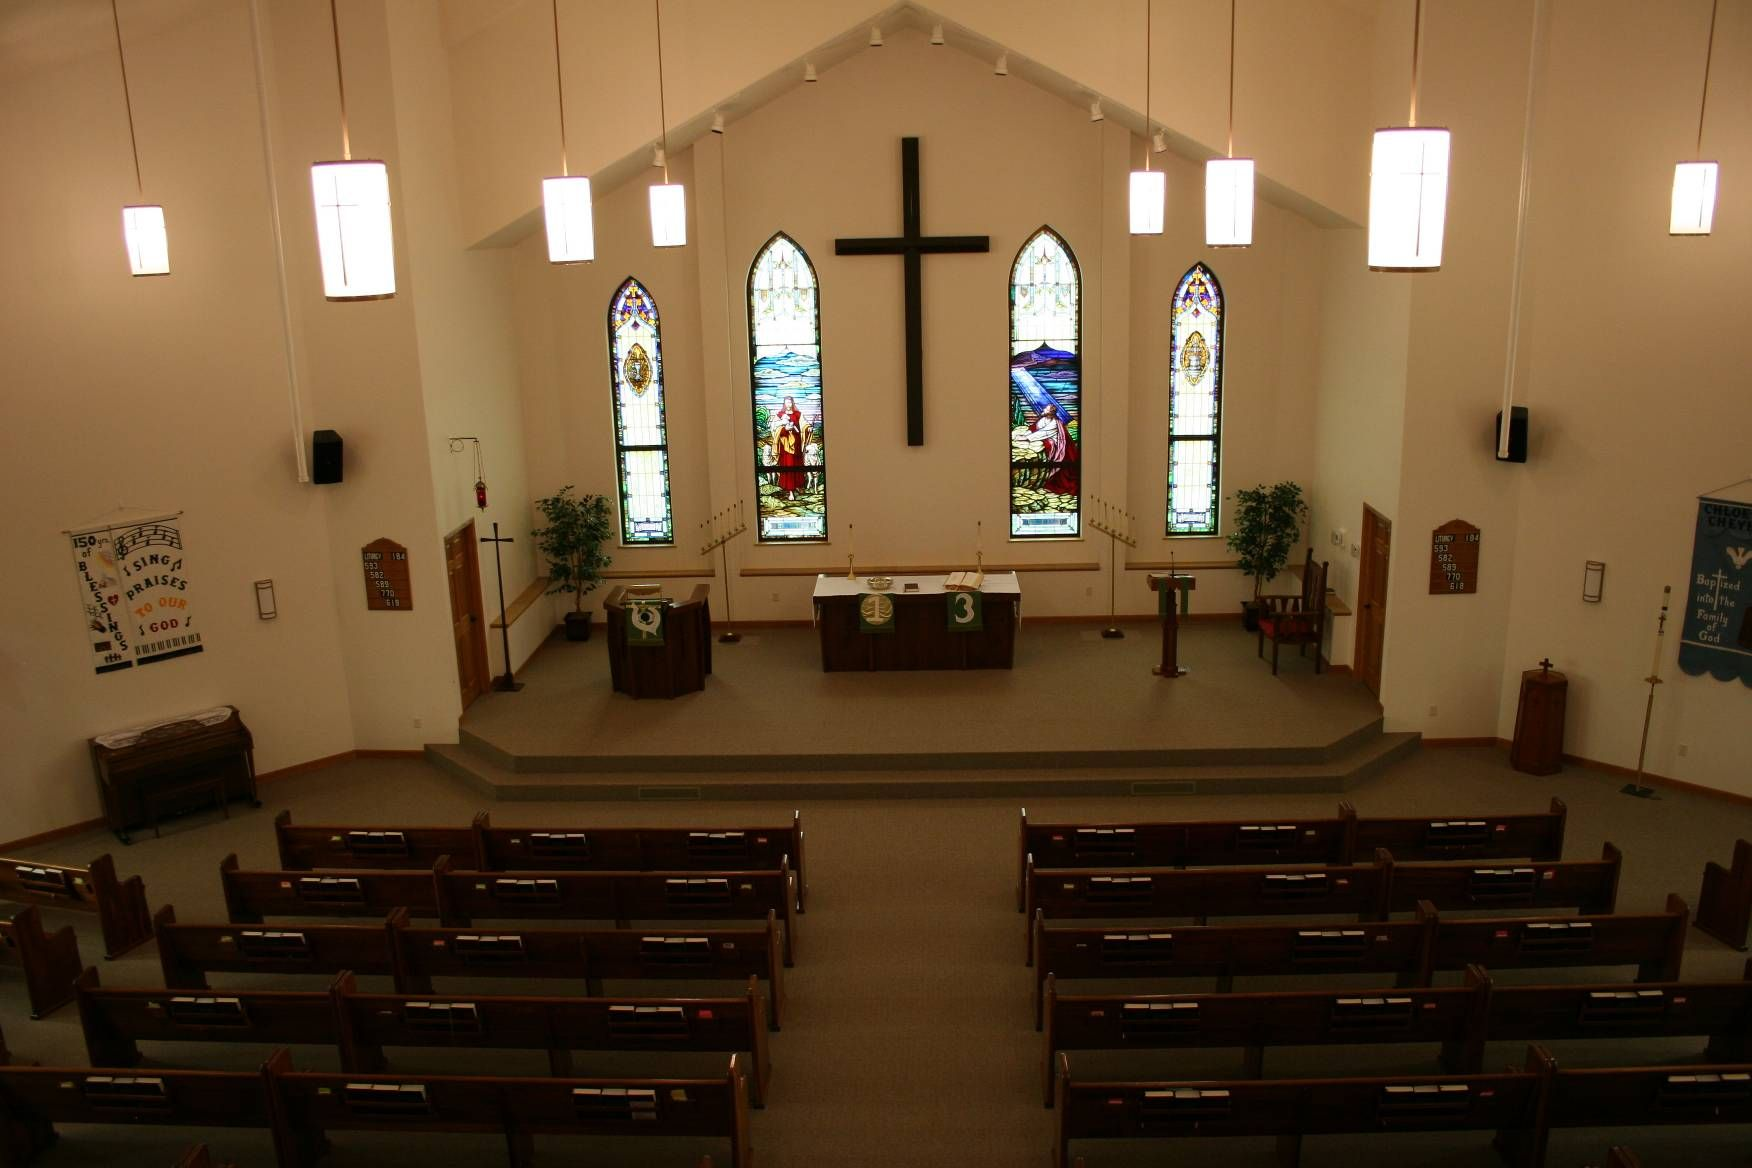 rural church sanctuary - Google Search | Lighting | Pinterest ...